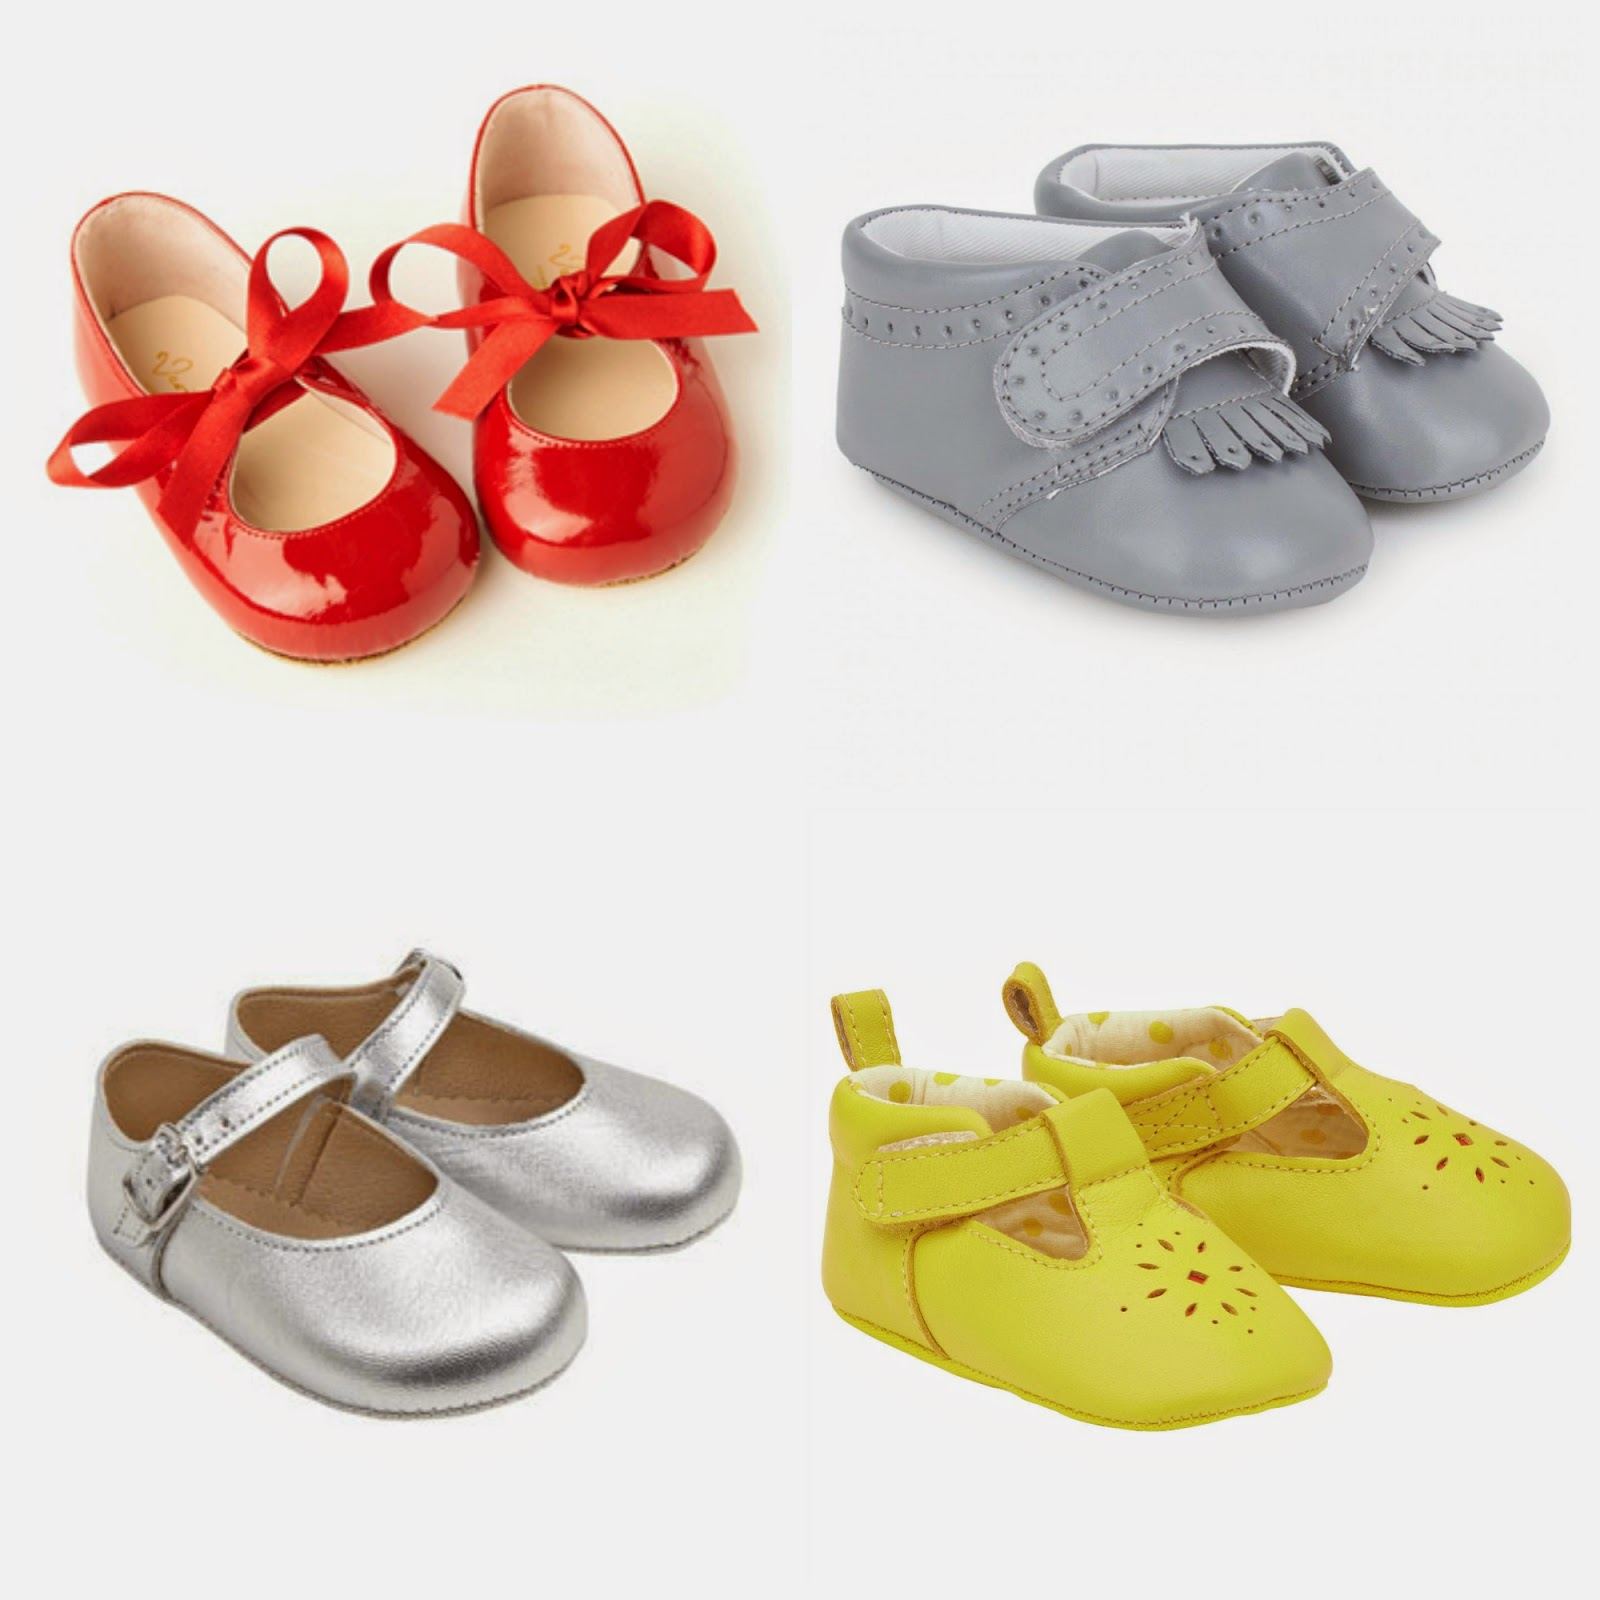 First baby pram shoes from Clarks - and my pick of the rest! | pram shoes | marks & spencer | crib shoes | first shoes | clarks | clarks pram shoes | ned collection | baby first shoes | shoes for babies | alex and alexa | next | vevian | la coquet | clarks first shoes for babies | clarks shoes | baby shoes | early days shoes | classic baby shoes mayoral | leather brogues for babies | crib she's for little feet } kids shoes | babies shoes | mamasVIB | fashion | style | kids fashion | new nor | gift ideas | mamasVIB